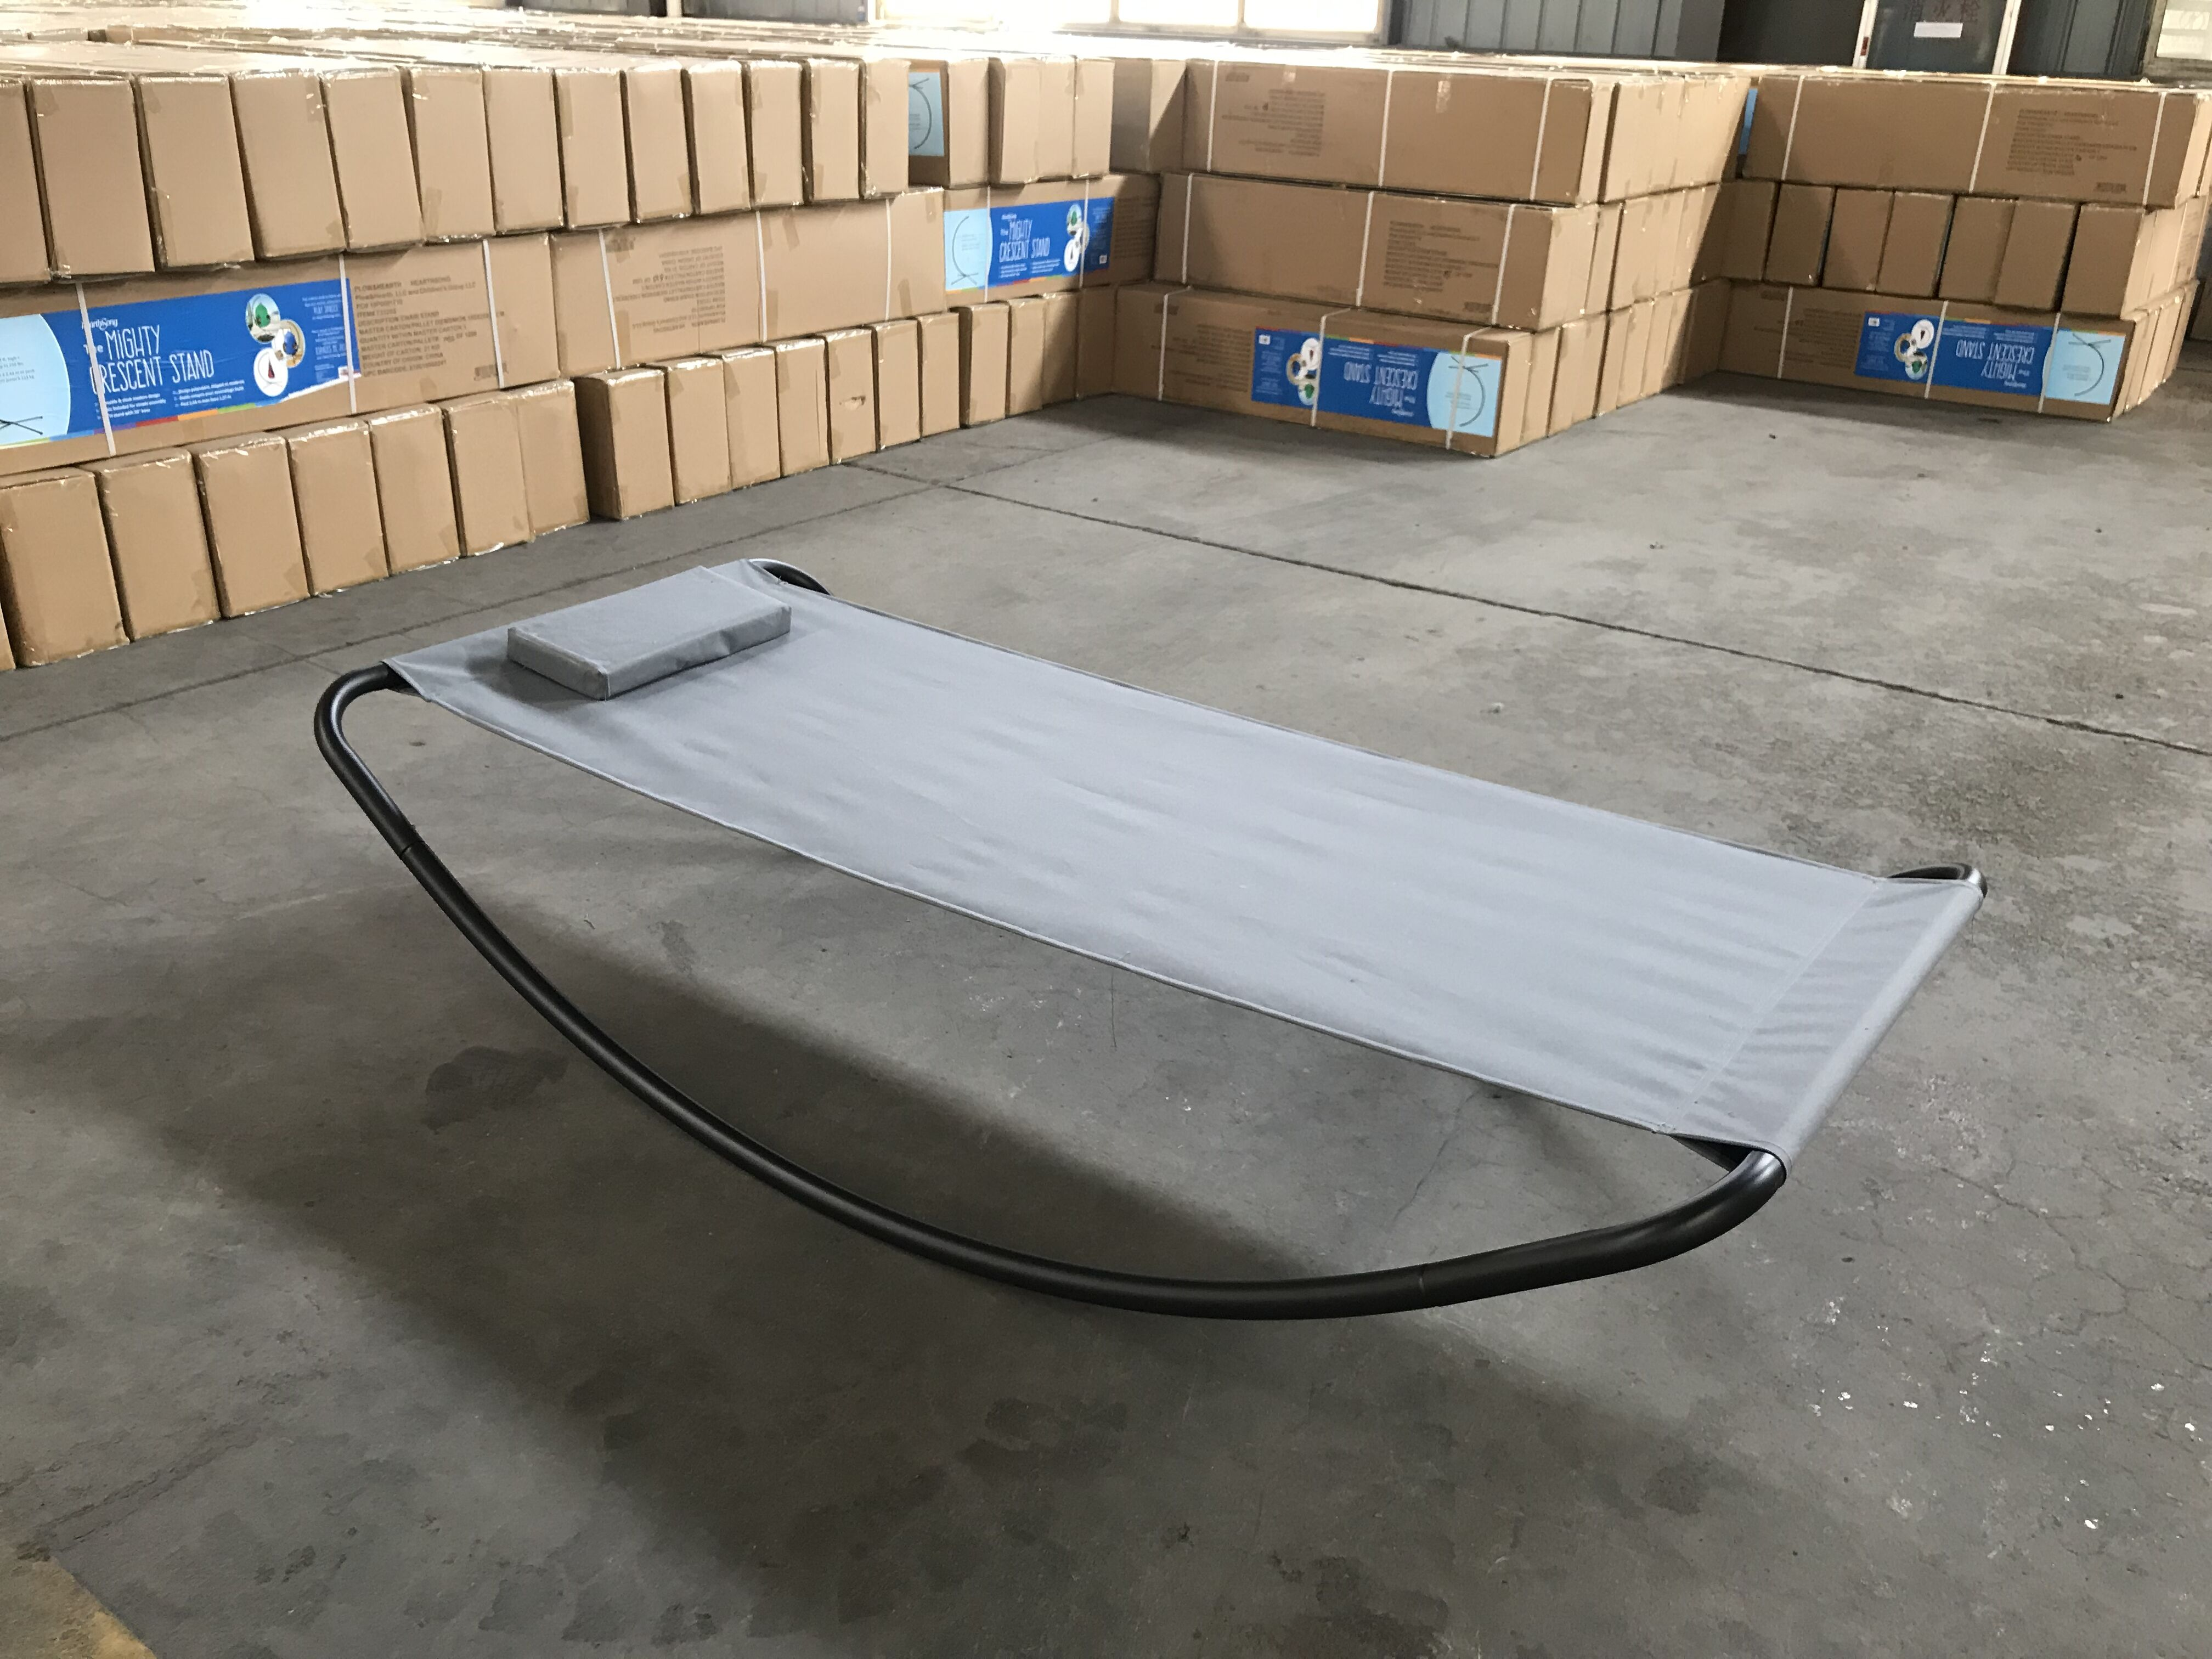 Patio Outdoor Portable Double Chaise Lounge Hammock Bed with Sun Shade and Wheels